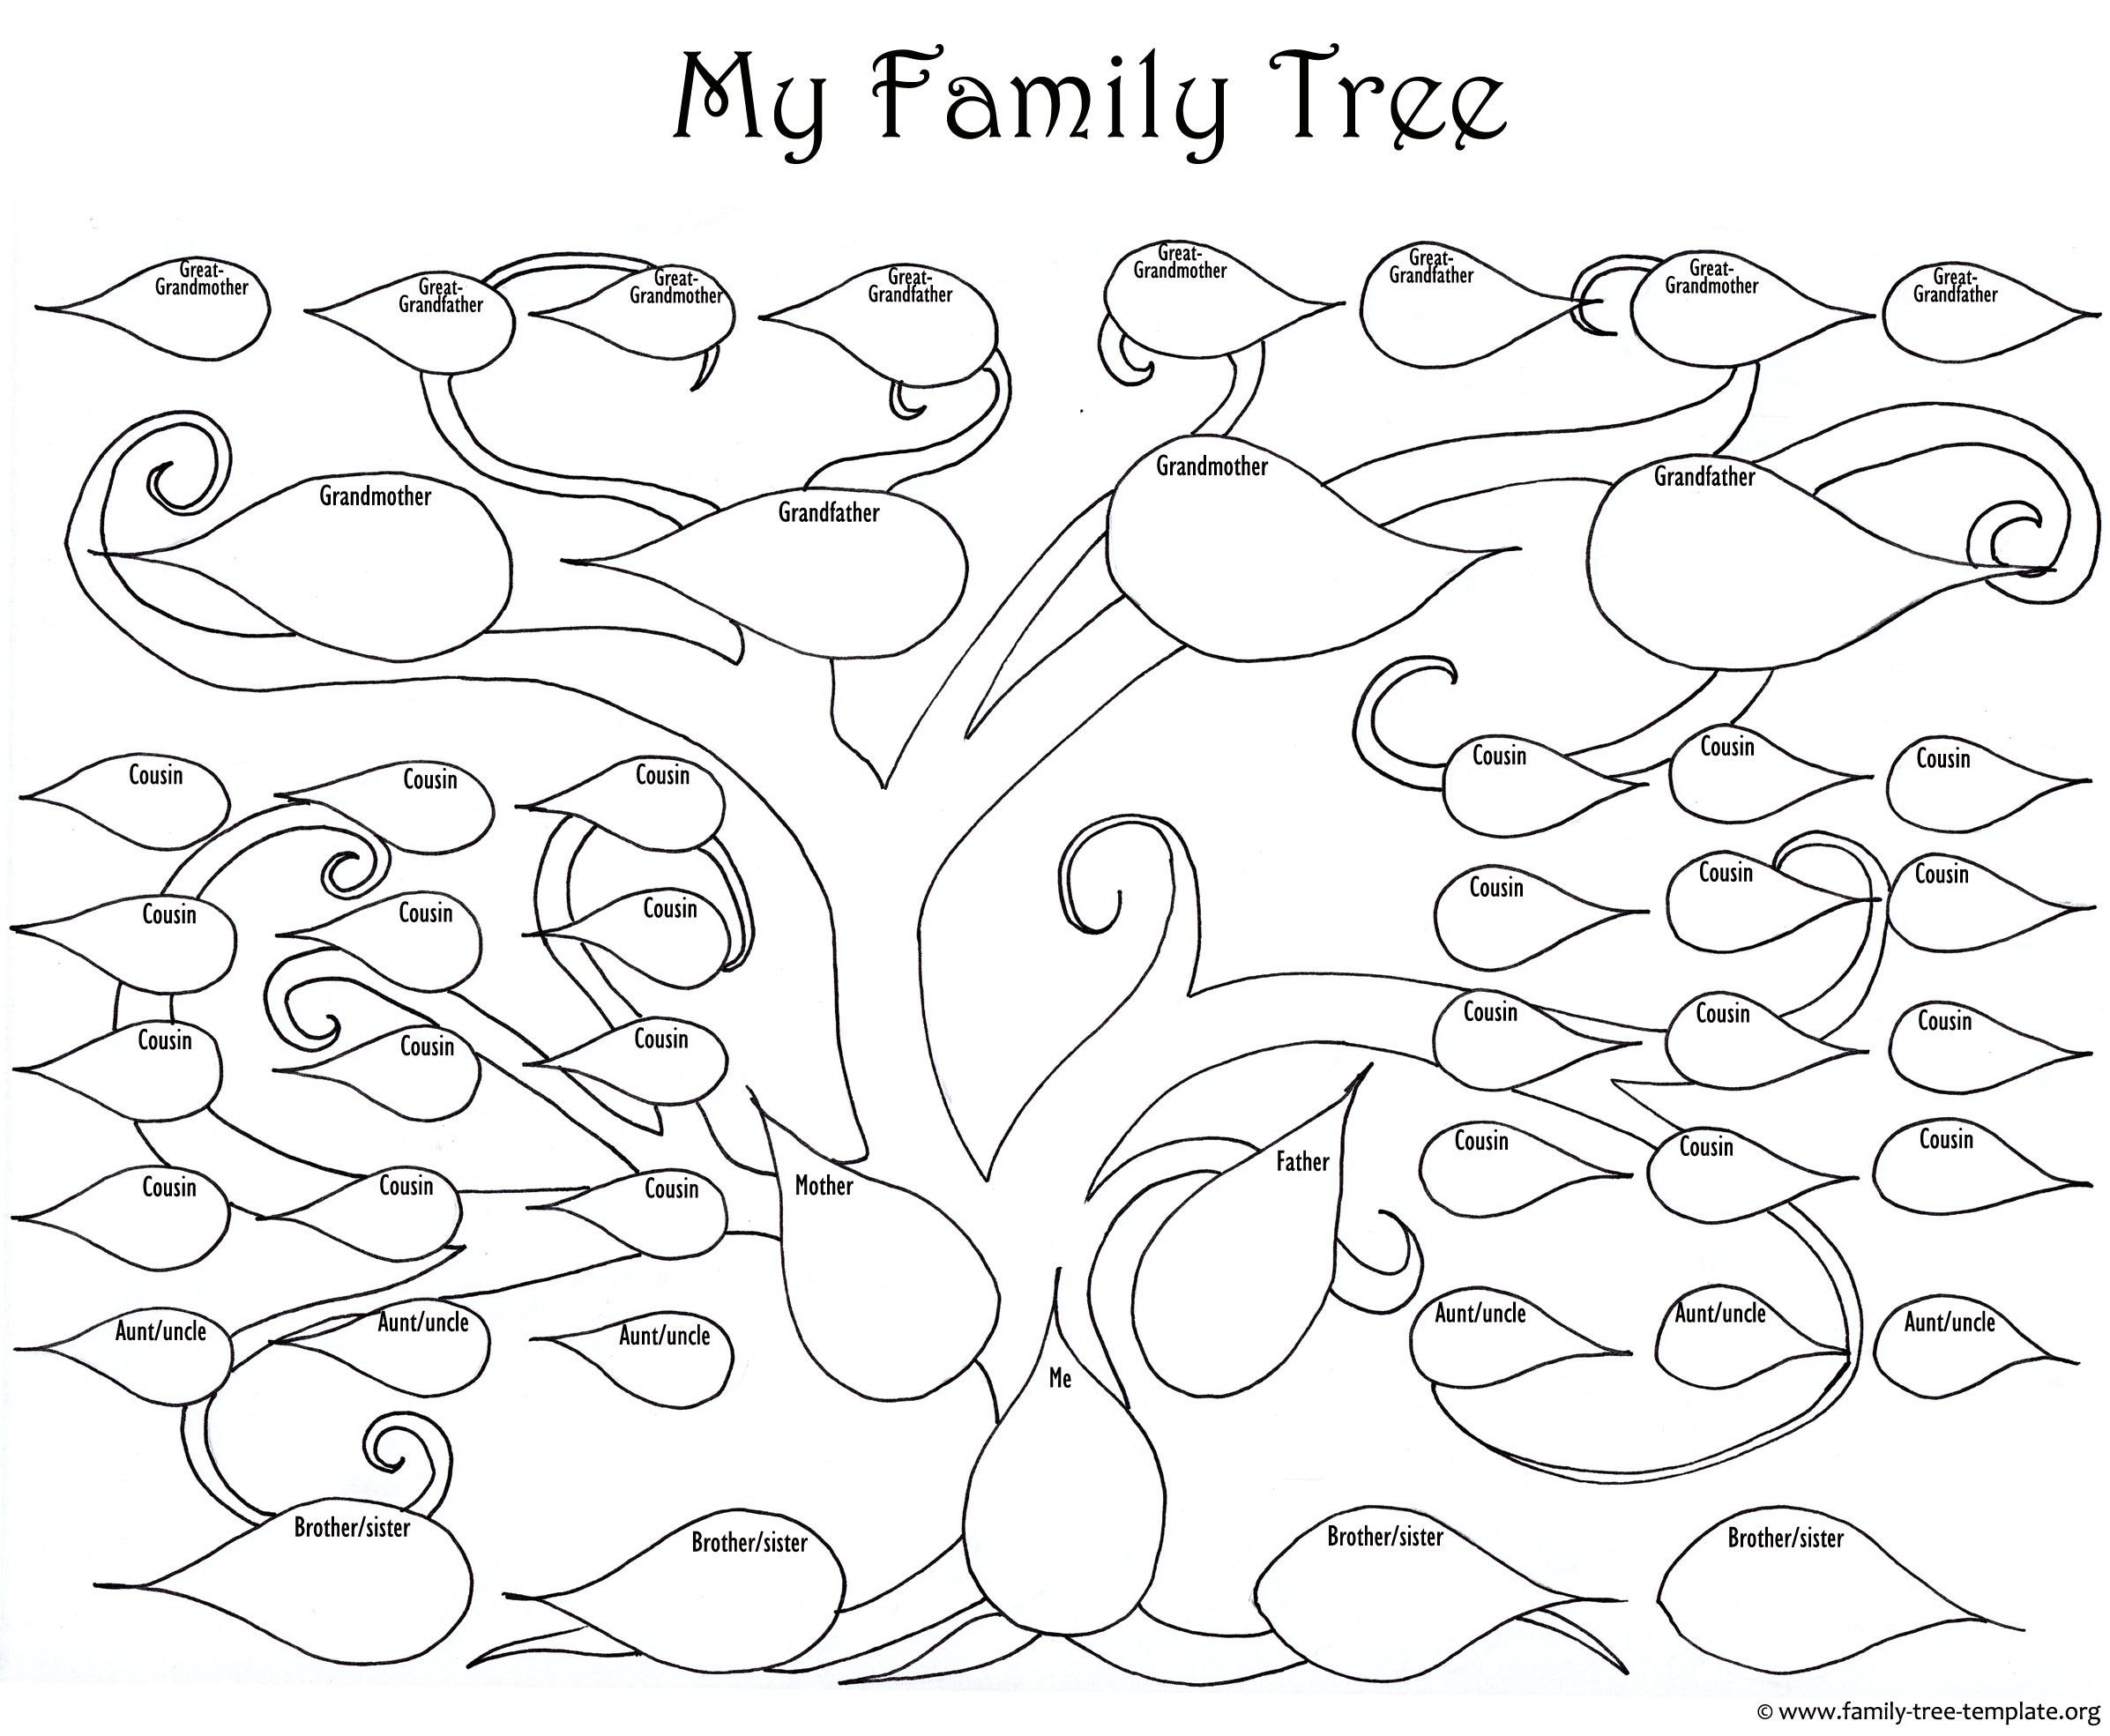 plain family tree template - a printable blank family tree to make your kids genealogy